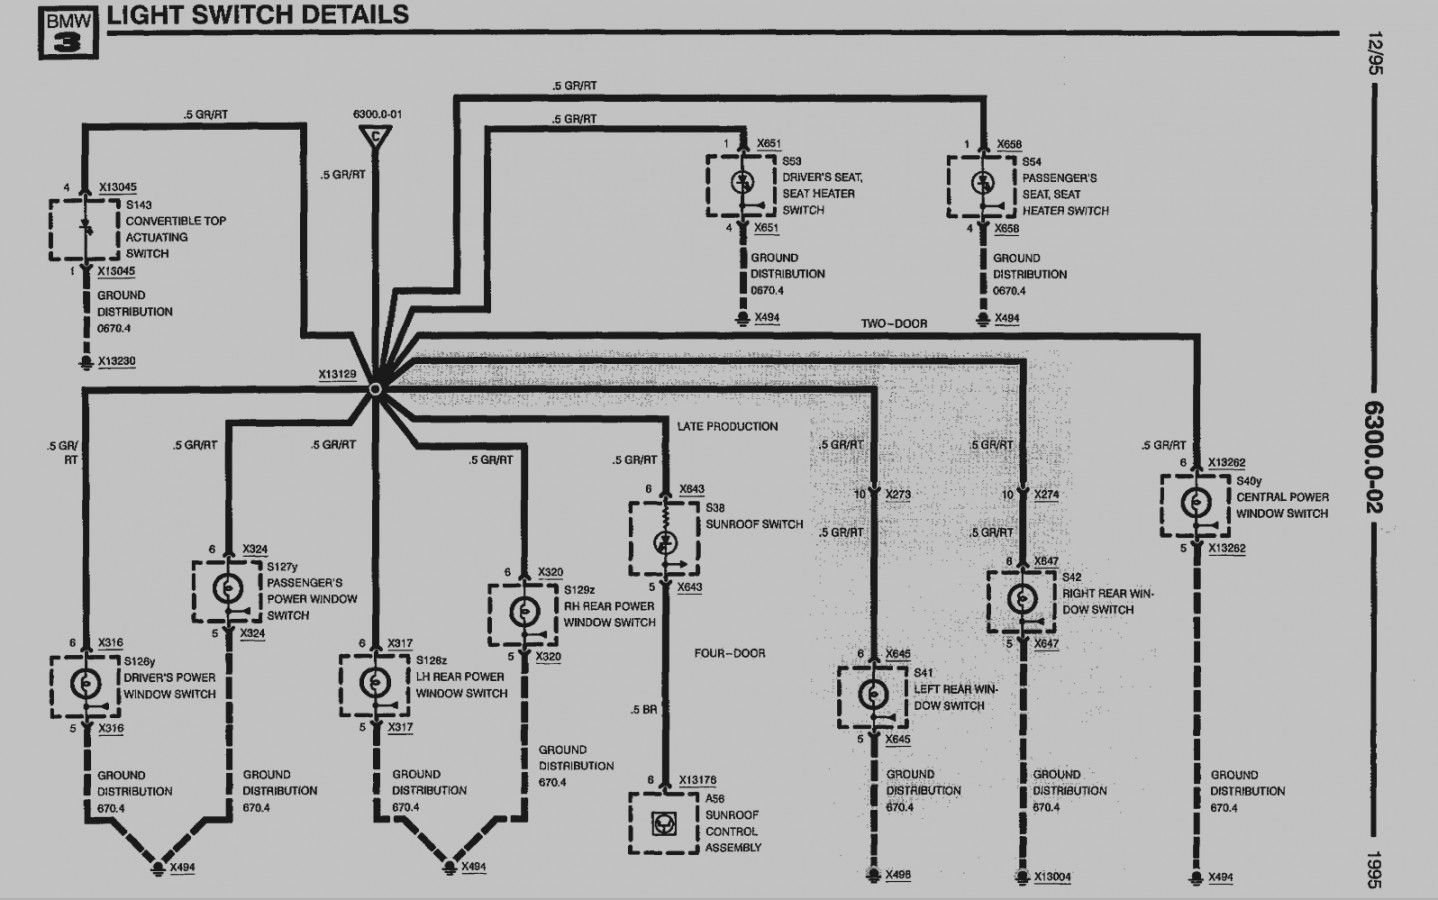 hight resolution of 98 e36 wiring diagram schema diagram database bmw e36 316i wiring diagrams bmw e36 wiring diagrams